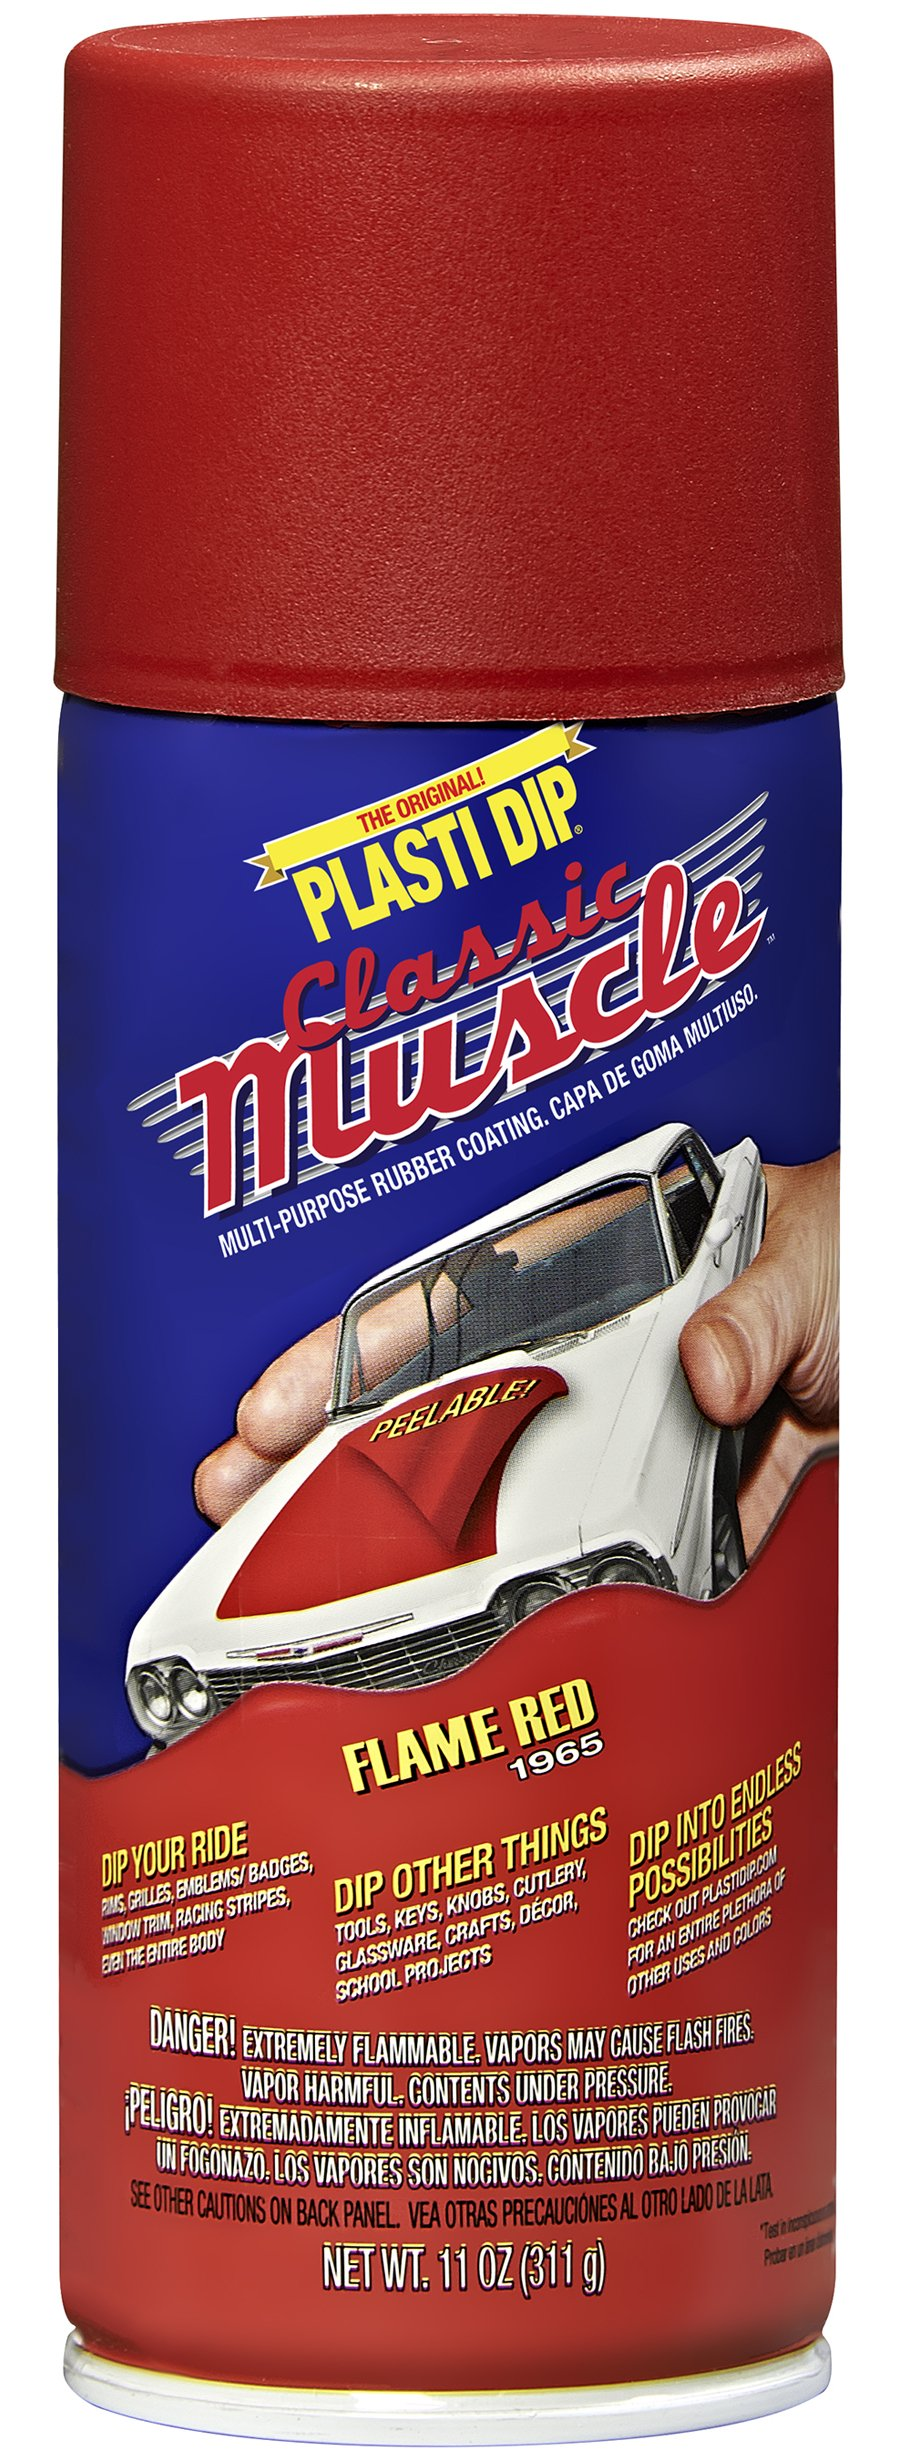 Performix 11311-6 Flame Red Classic Muscle Car Rubber Coating, 11 oz, 6 Pack by Plasti Dip